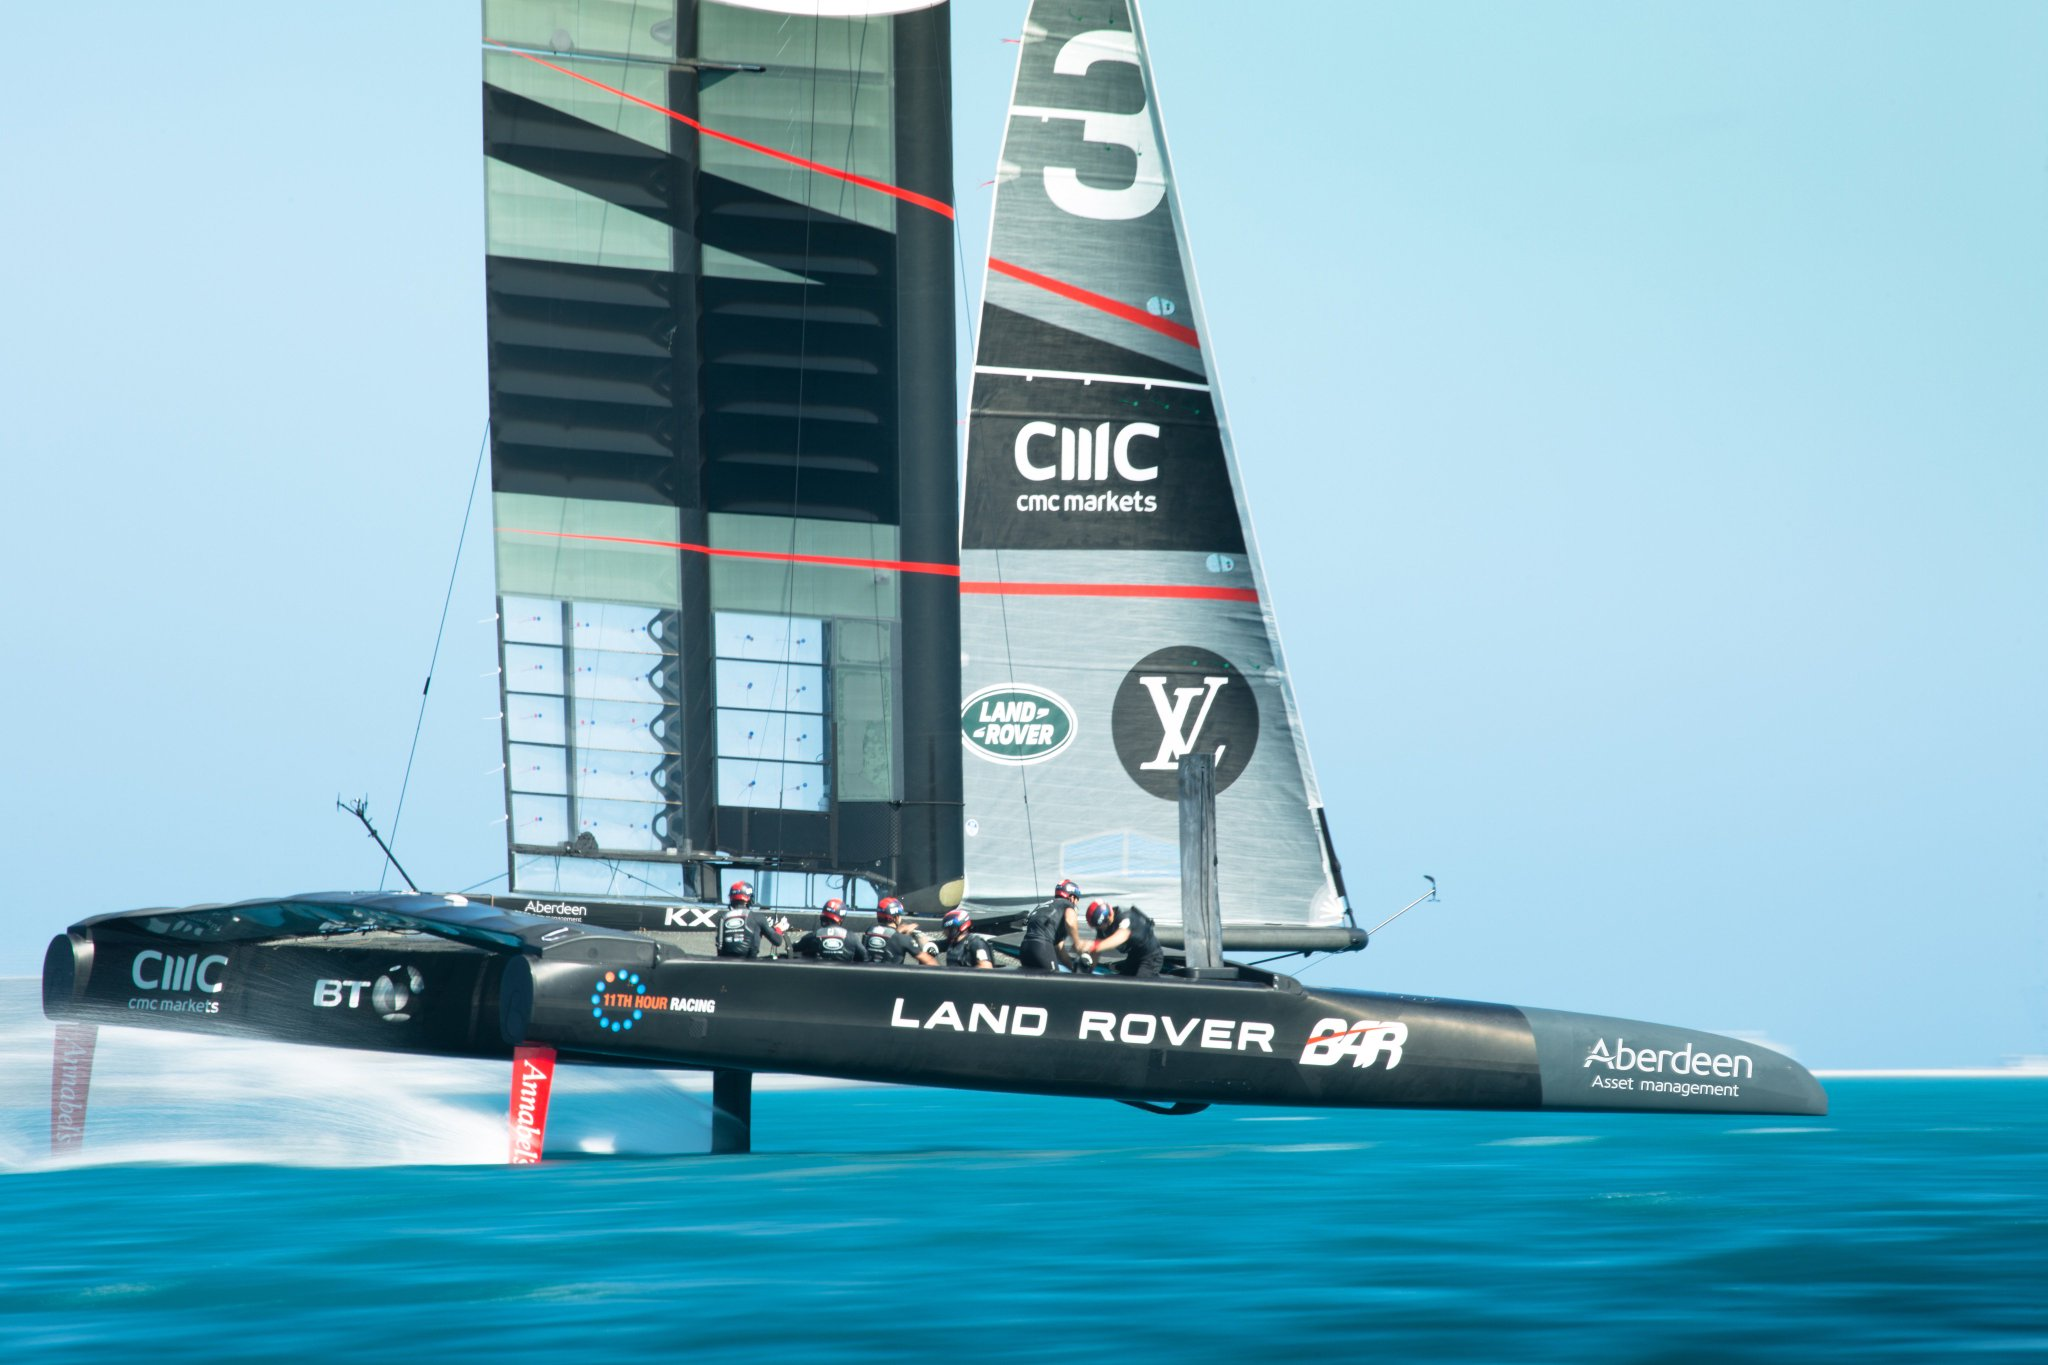 Heading to @Bermuda for the @americascup? Here's @TelegraphLuxury's guide to watching the action #BringTheCupHome https://t.co/muQsE6ZAFo https://t.co/xsR4NXMrsH